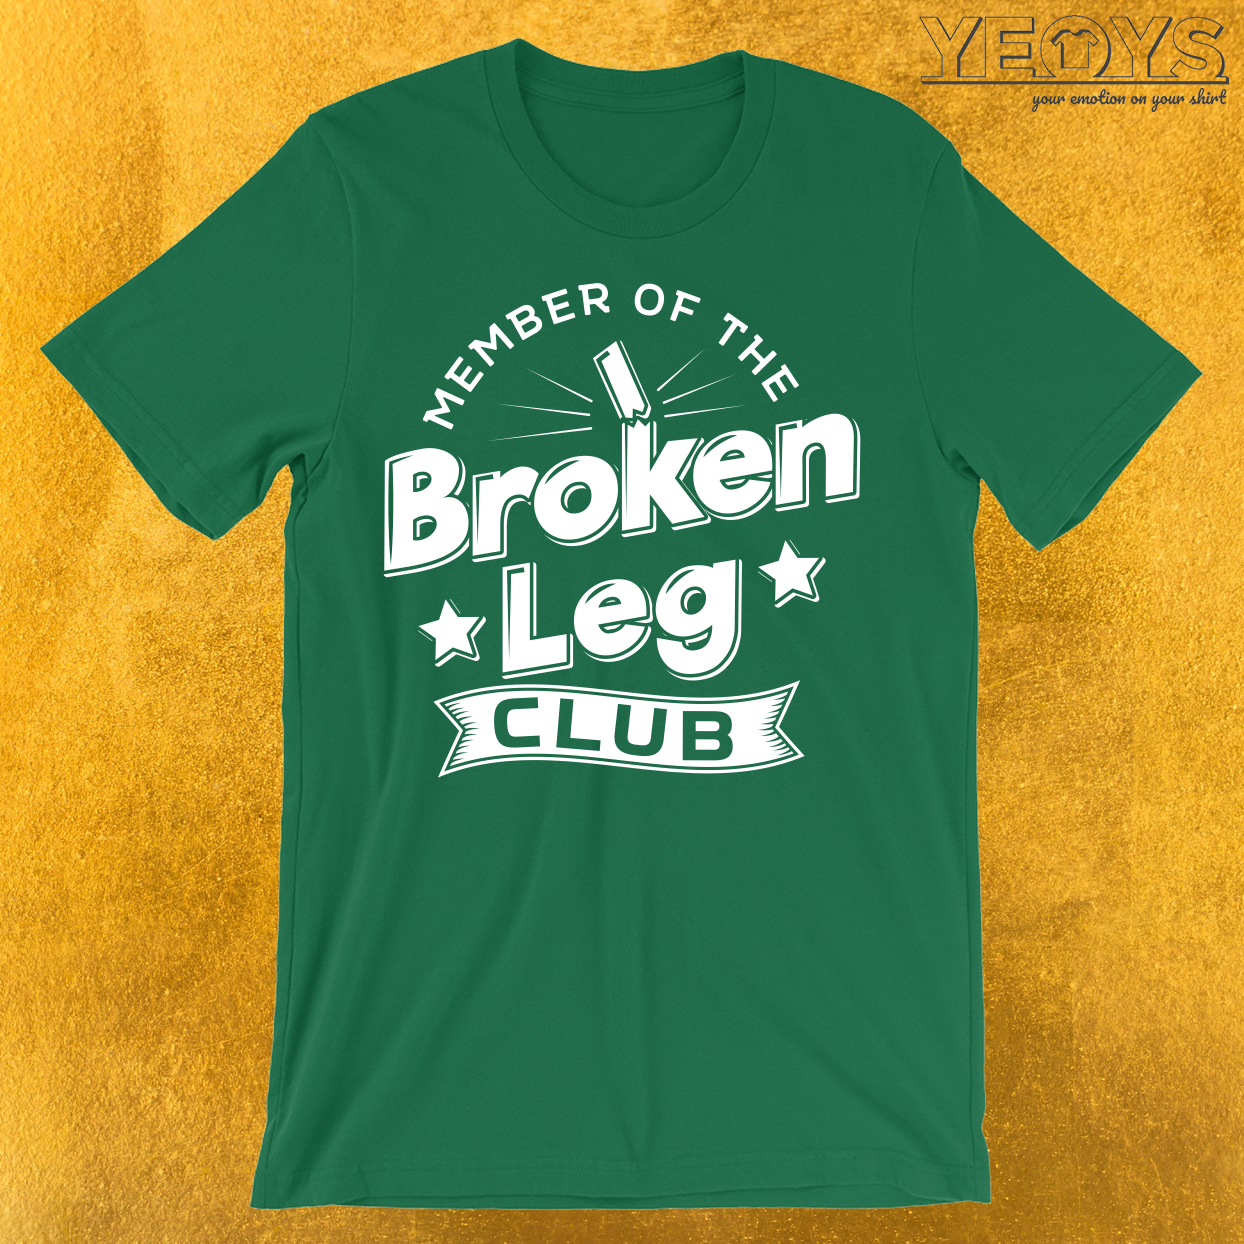 Member Of The Broken Leg Club T-Shirt